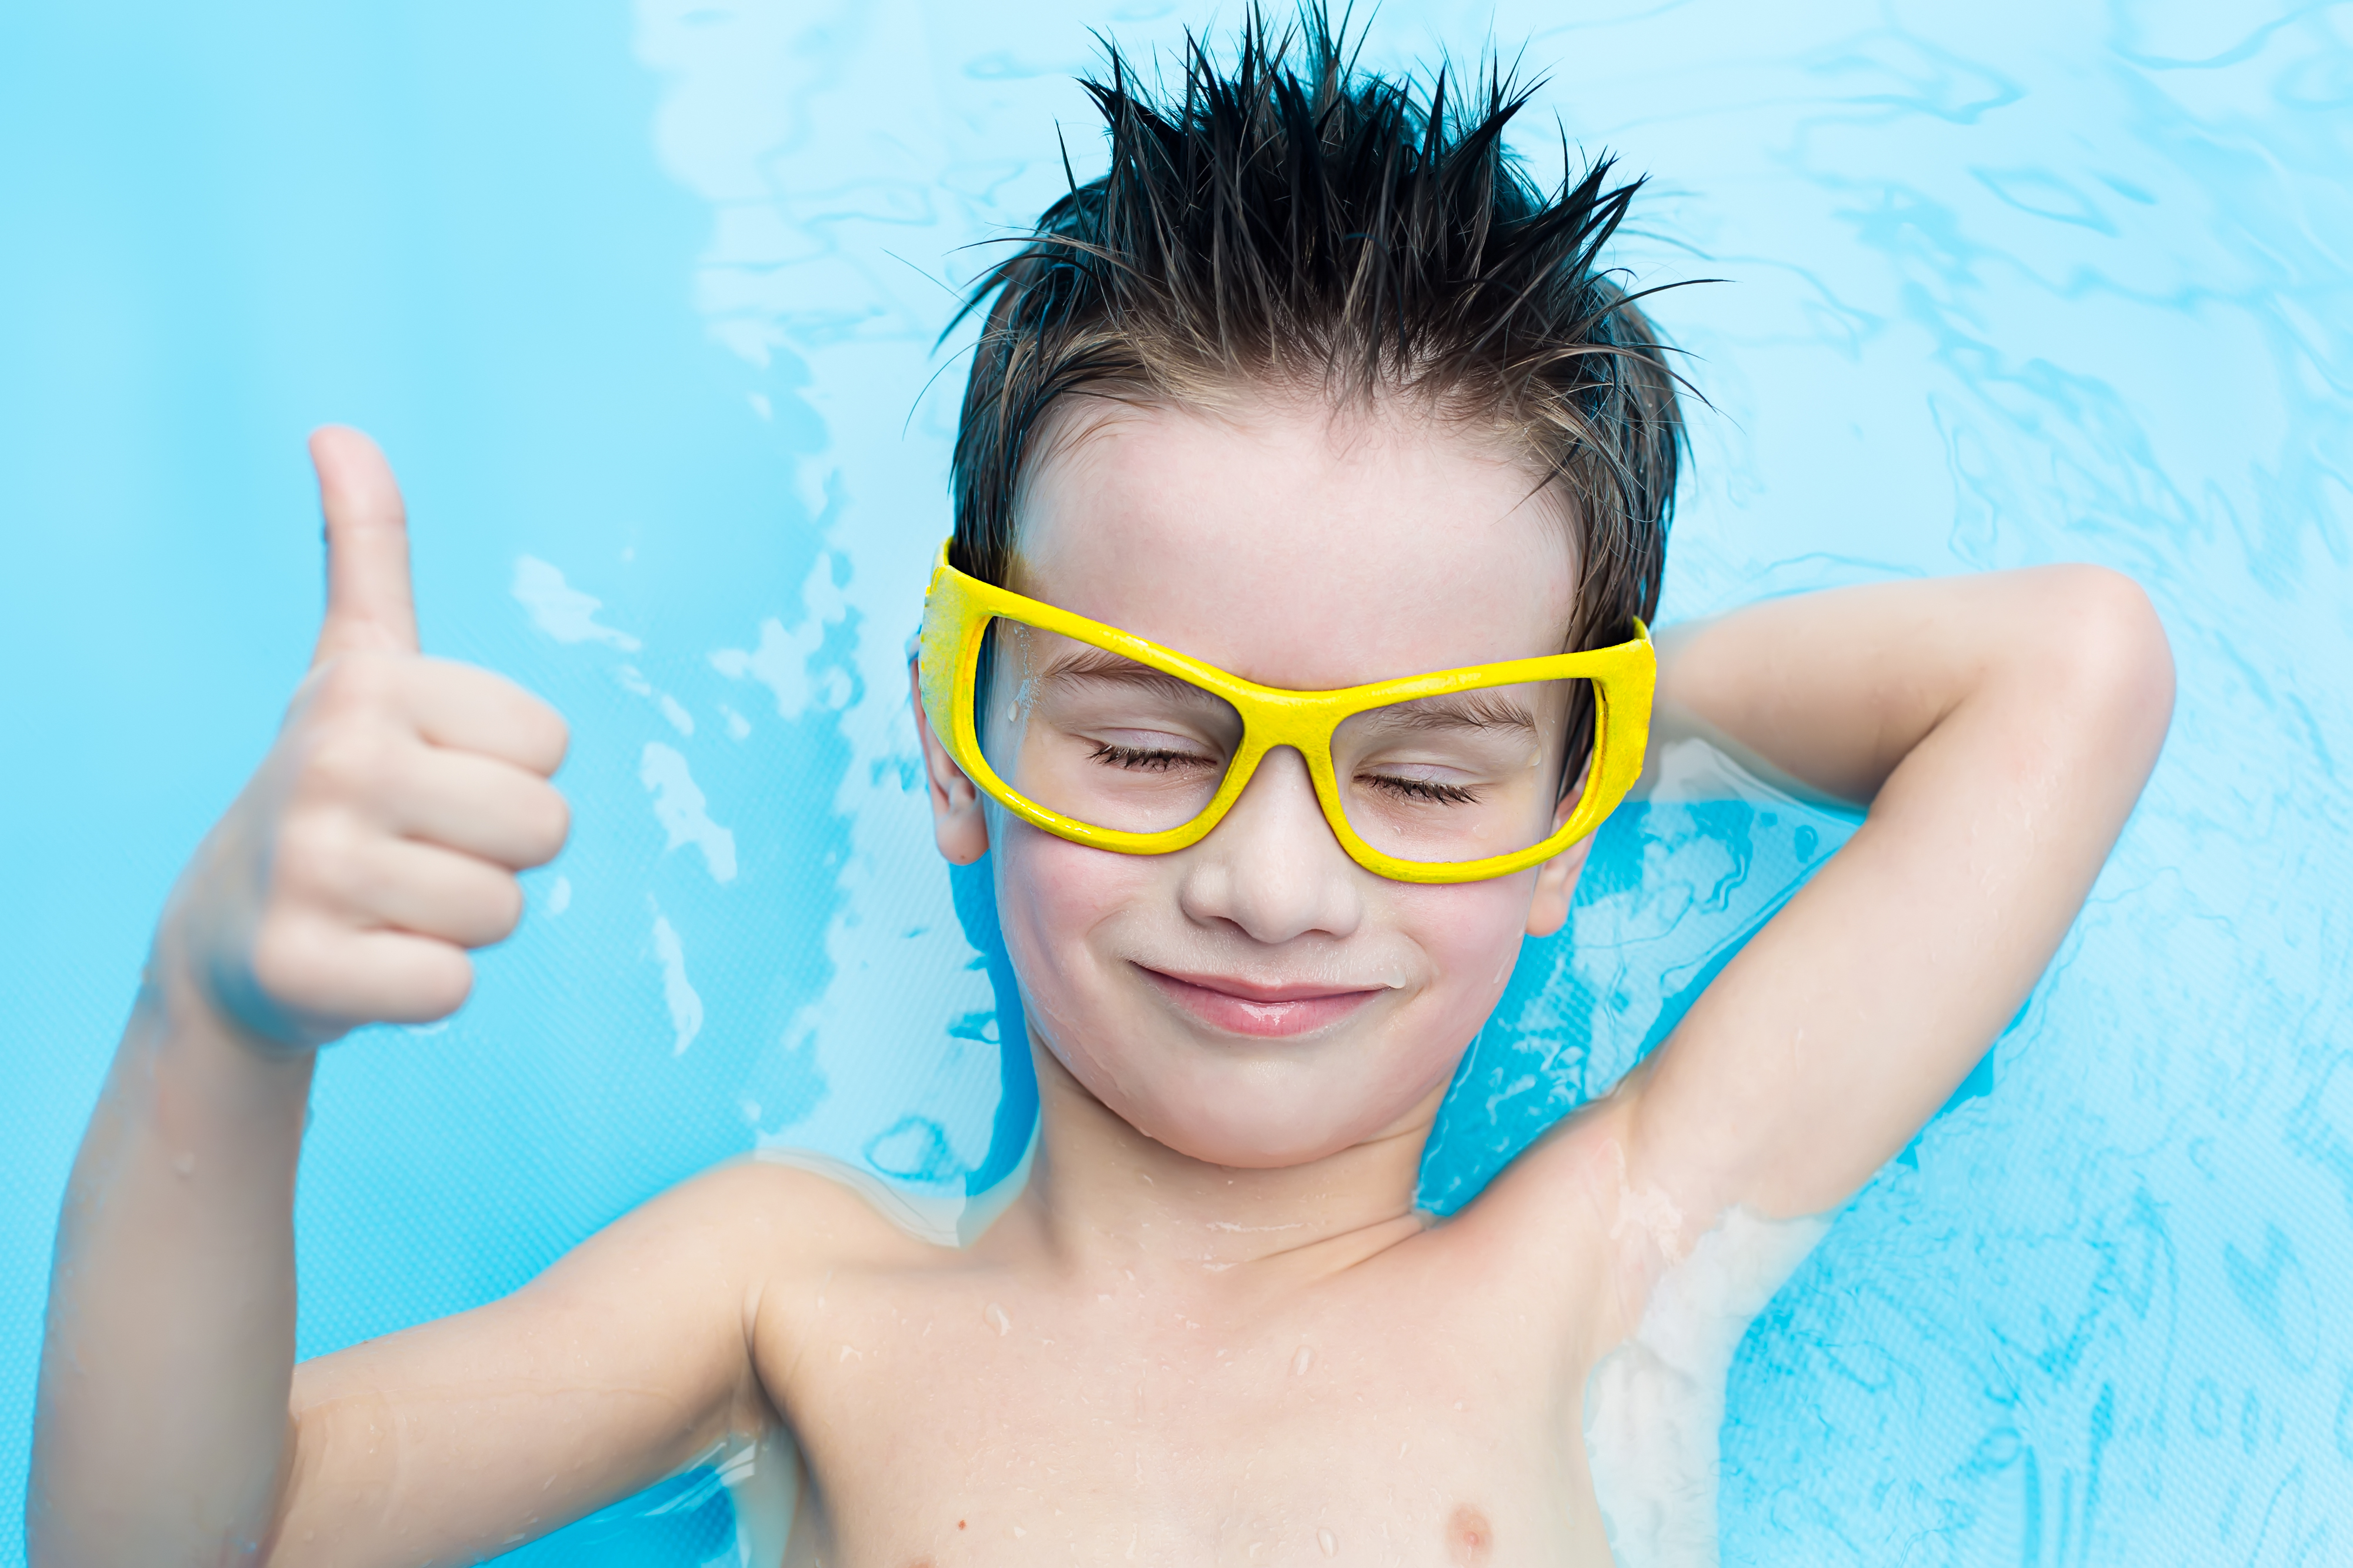 When Pee Meets Pool The Dangerous Chemicals That May Form